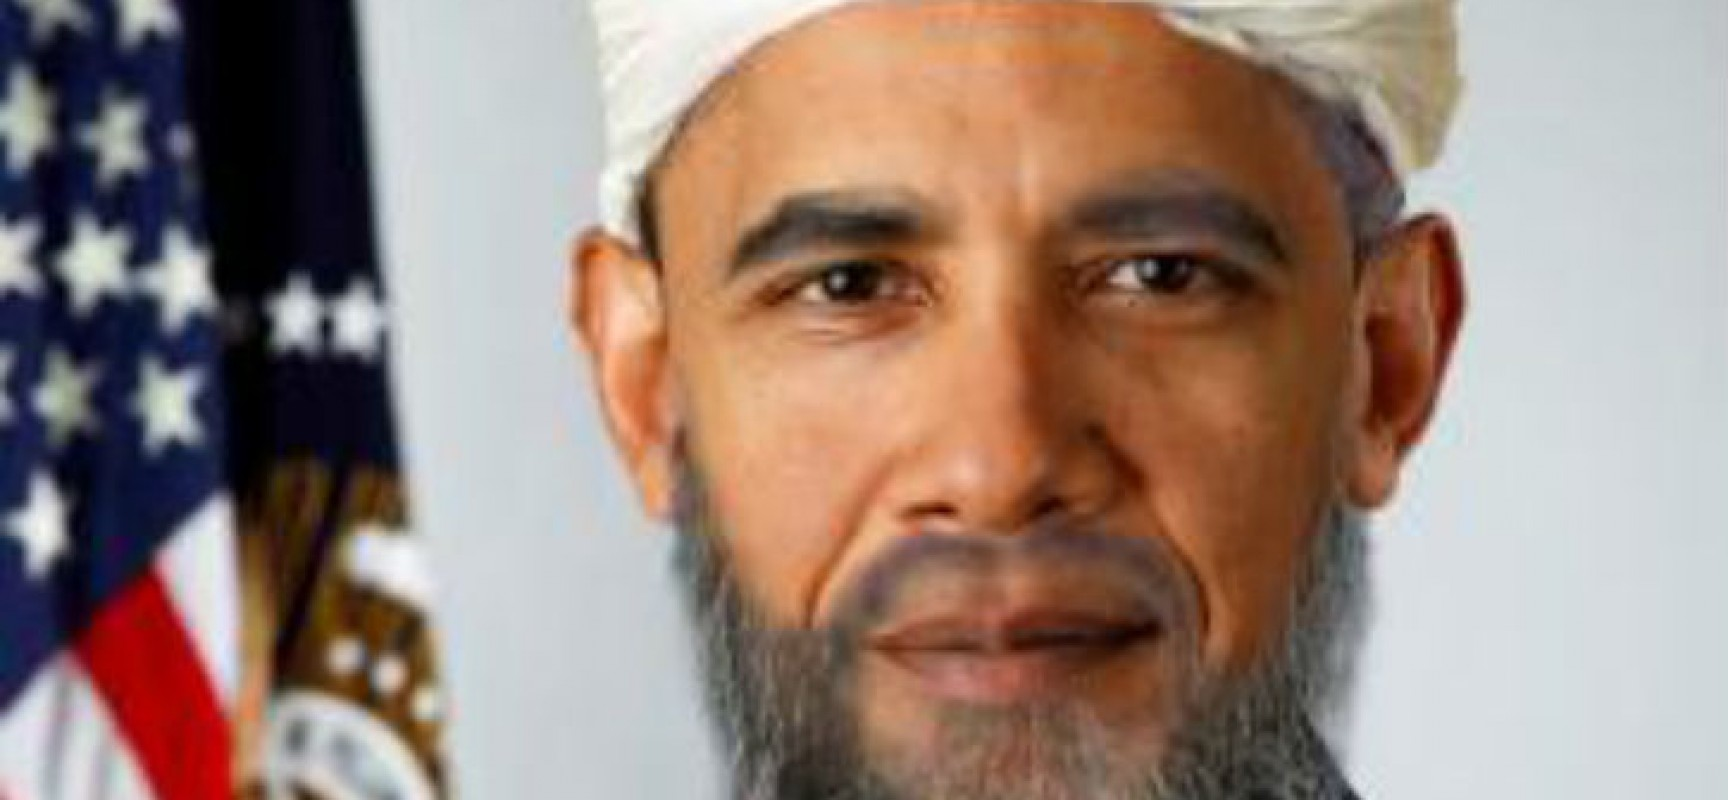 https://i1.wp.com/reseauinternational.net/wp-content/uploads/2014/11/Obama-%C3%A9tat-islamique-califat-1728x800_c.jpg